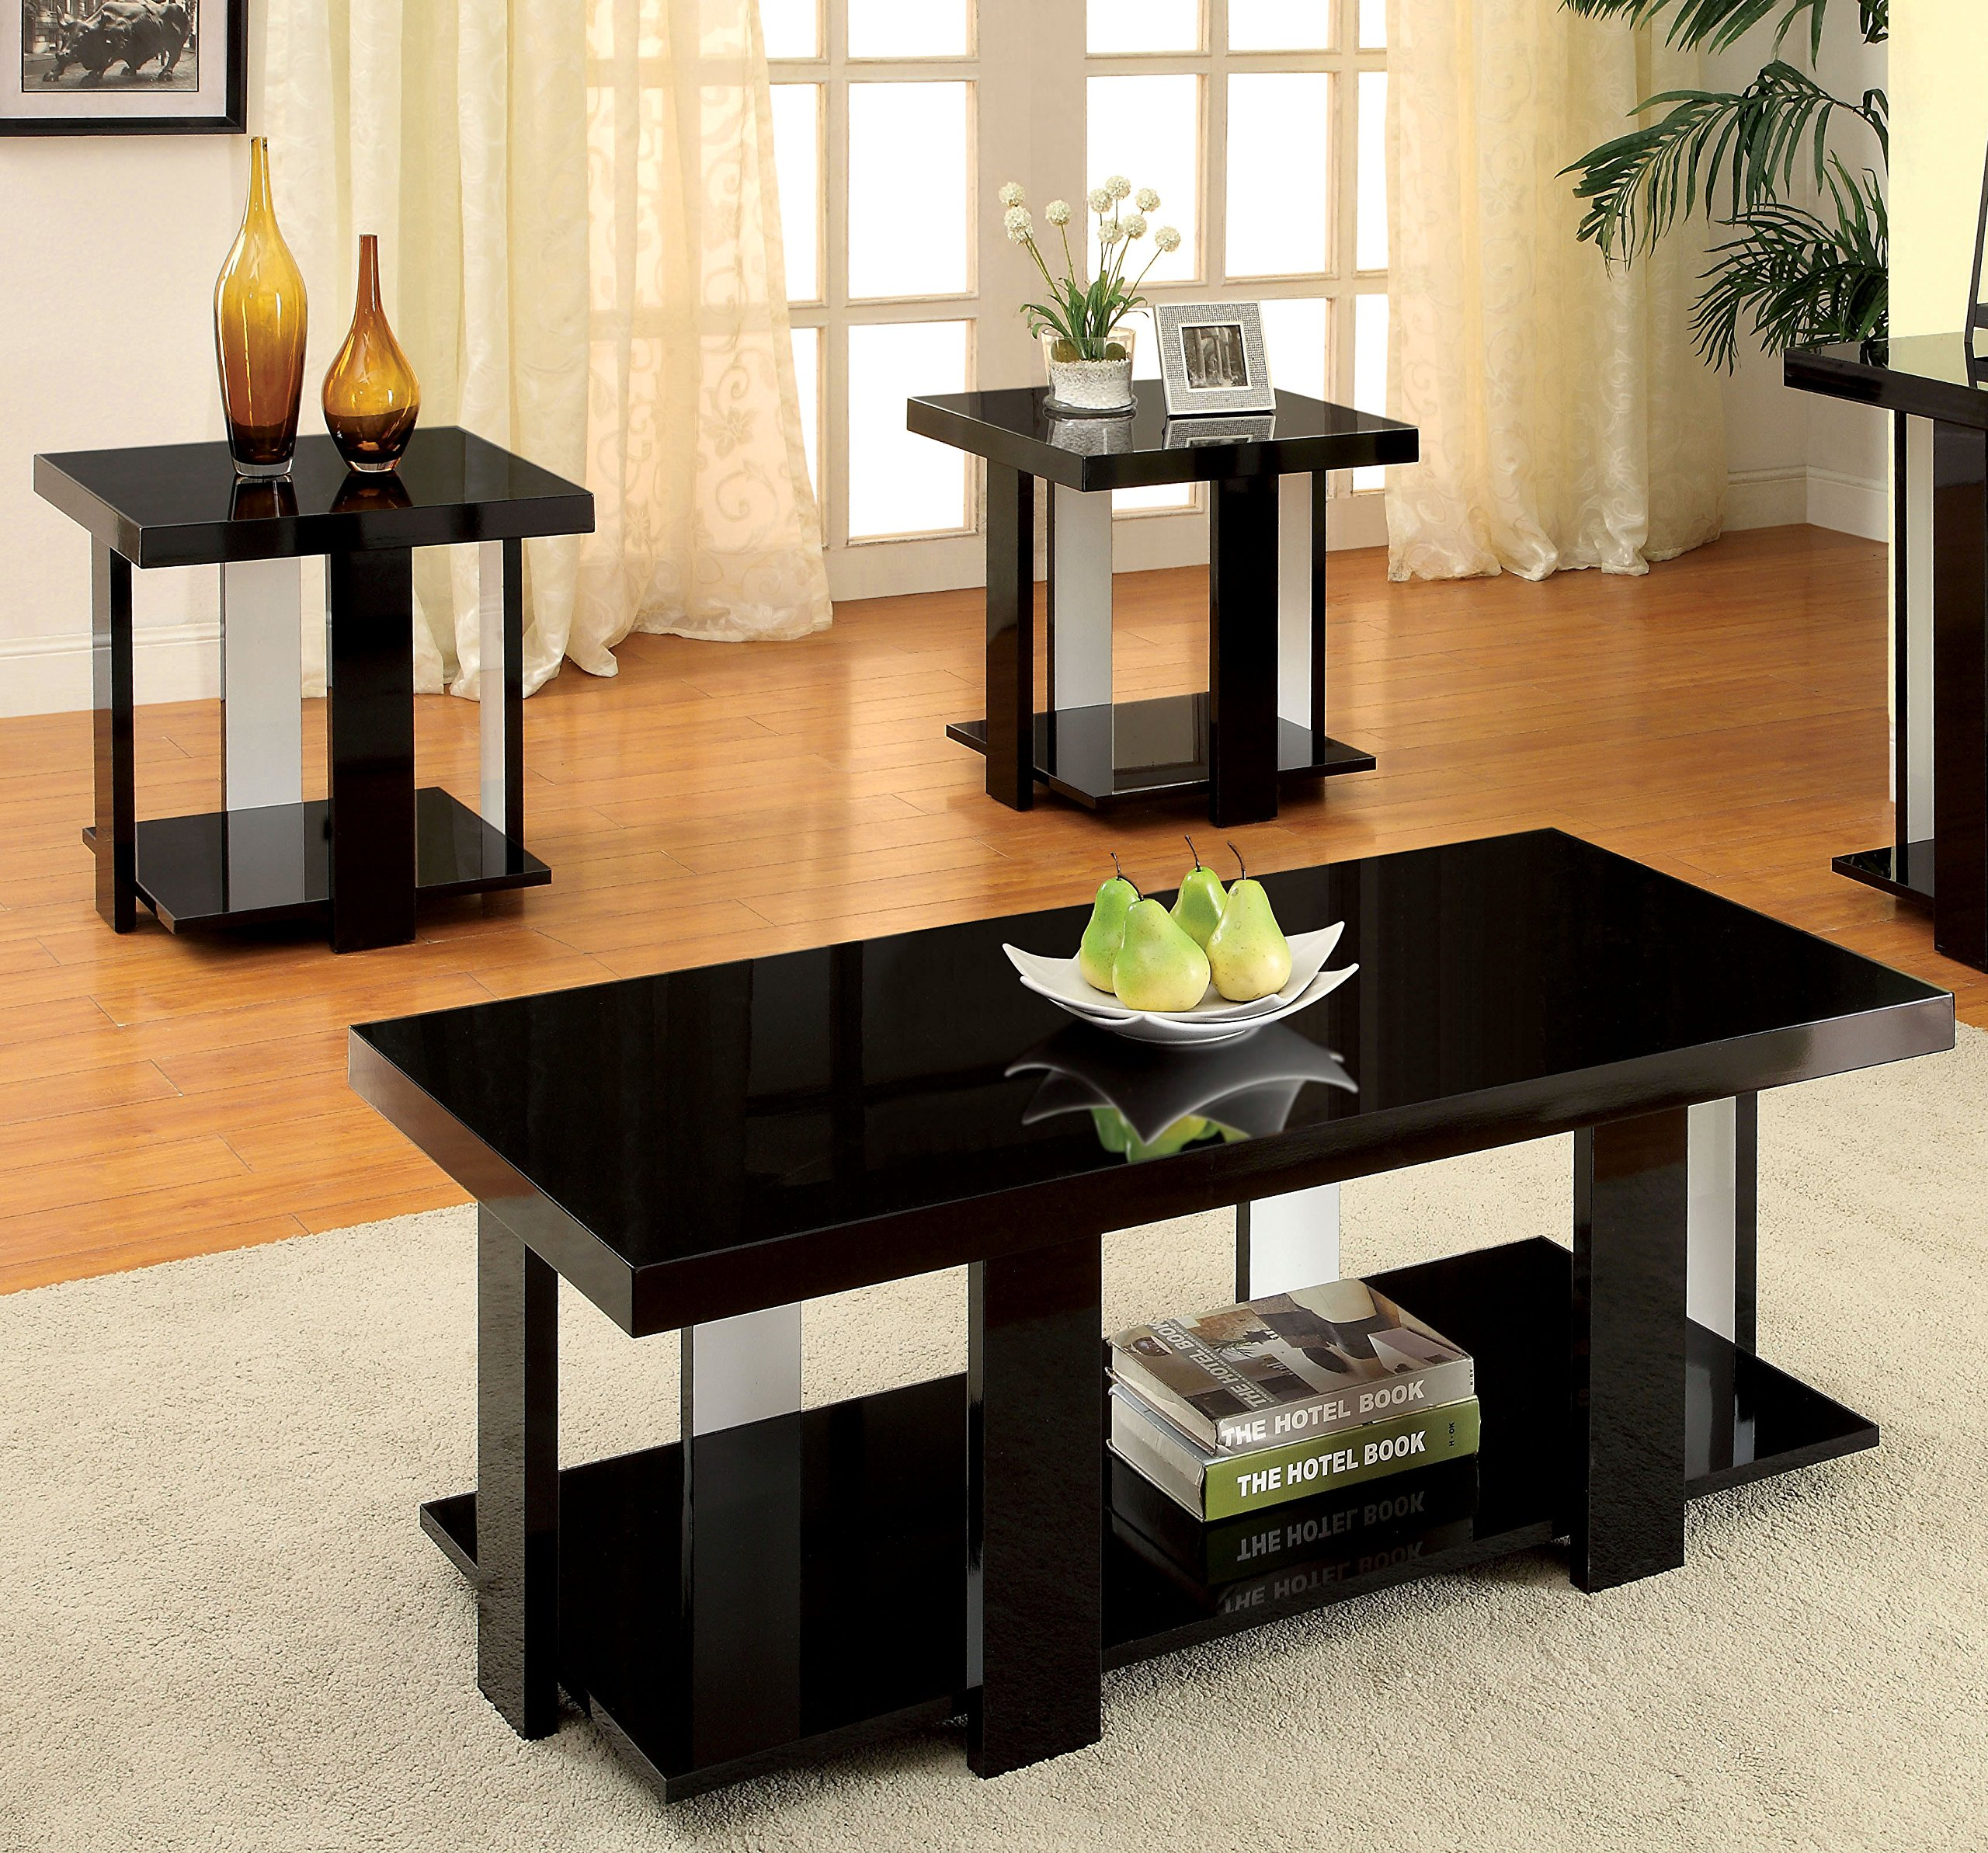 Furniture of America Oslo 3-Piece Modern Accent Tables Set, Black by Furniture of America